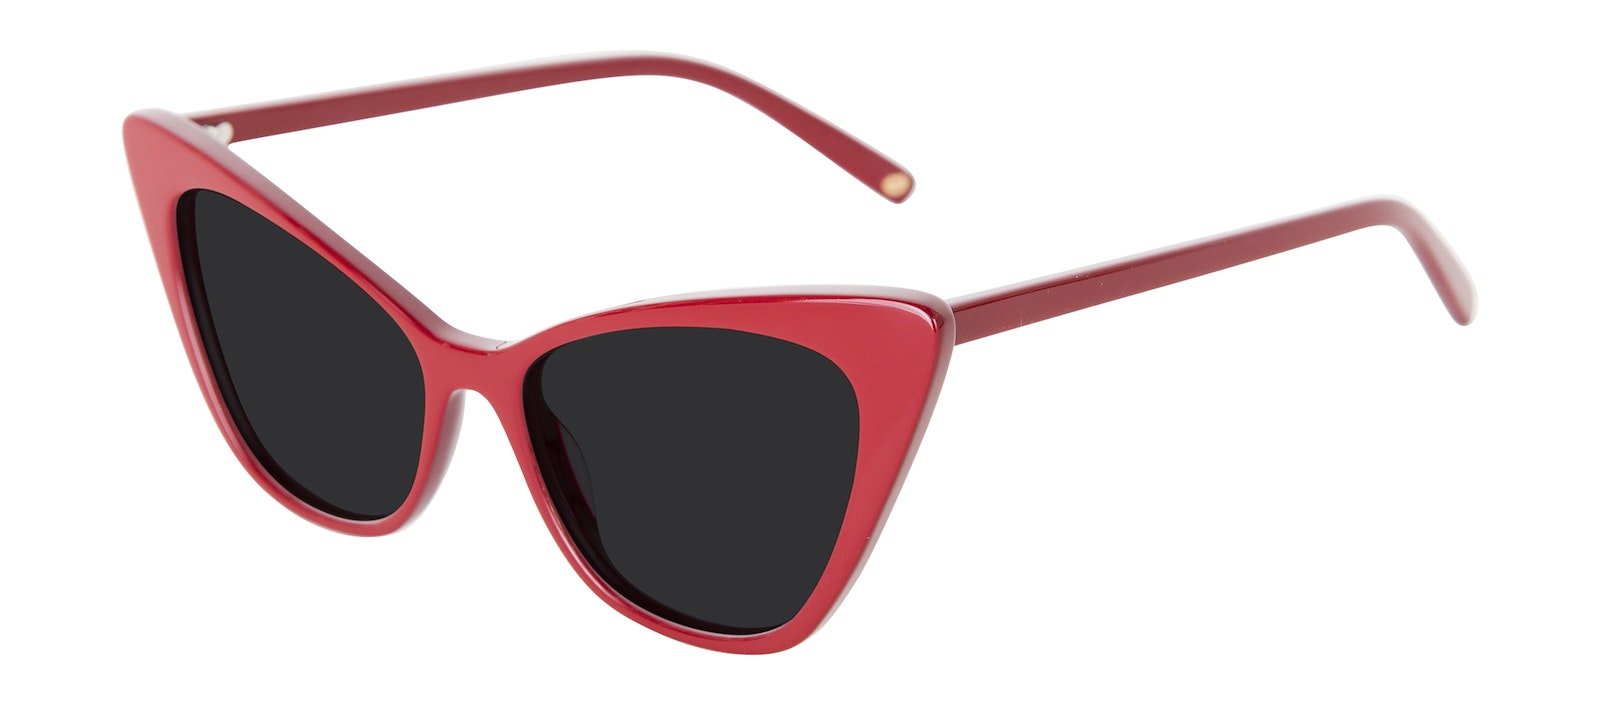 Affordable Fashion Glasses Cat Eye Sunglasses Women Keiko Lynn Ryder Red Tilt